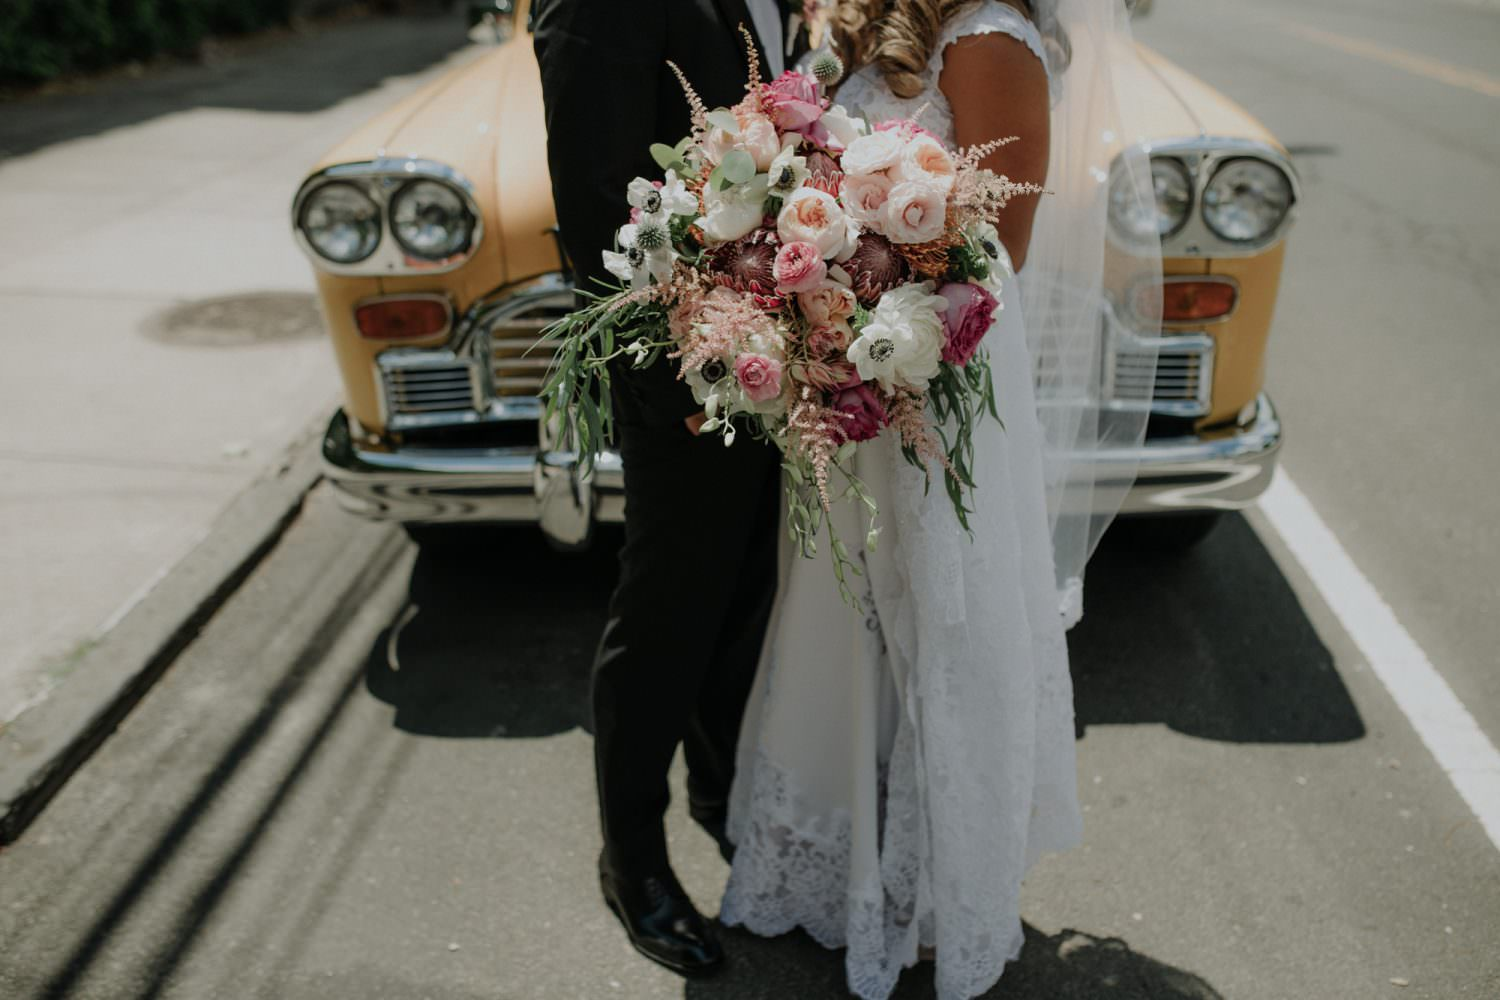 Bride and Groom standing close to each other holding the brides bouquet designed by Ivie Joy Flowers